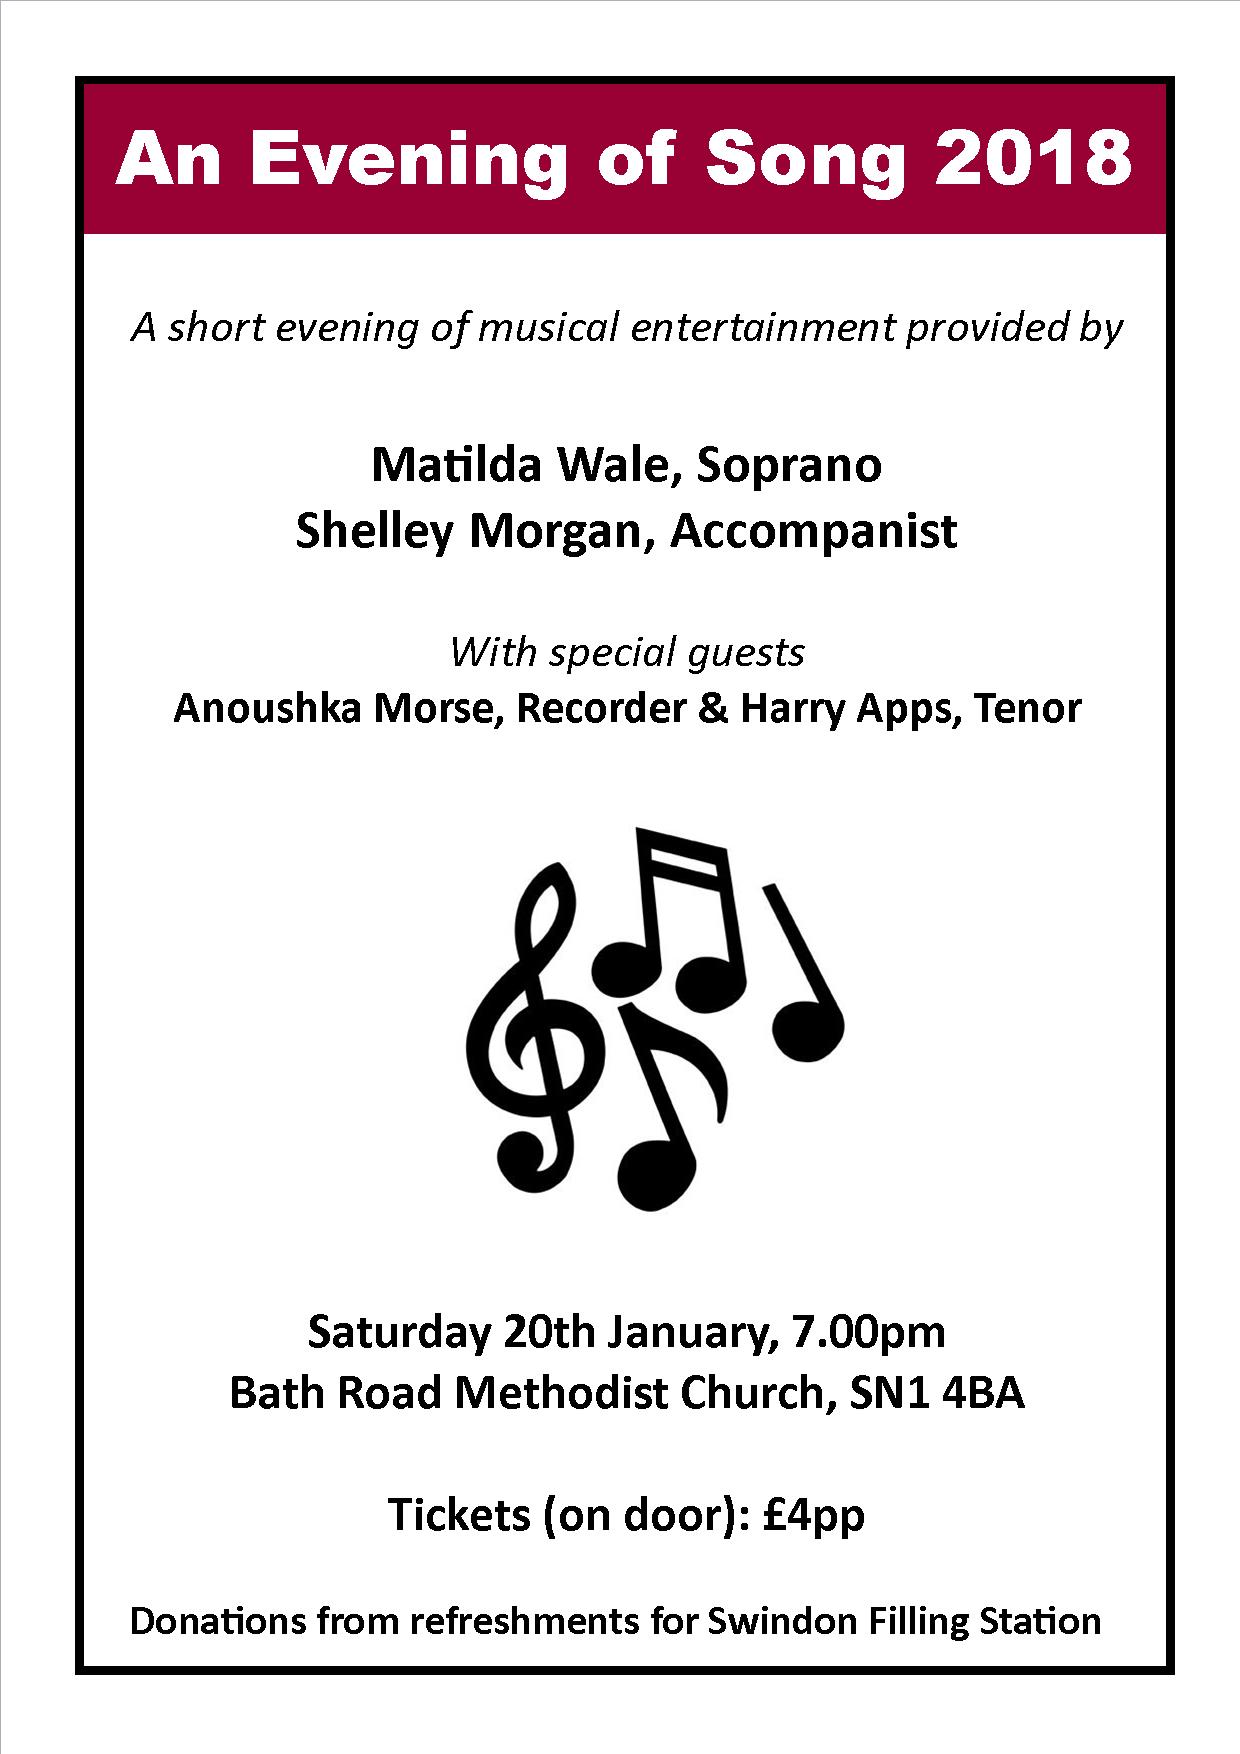 An Evening of Song 2018